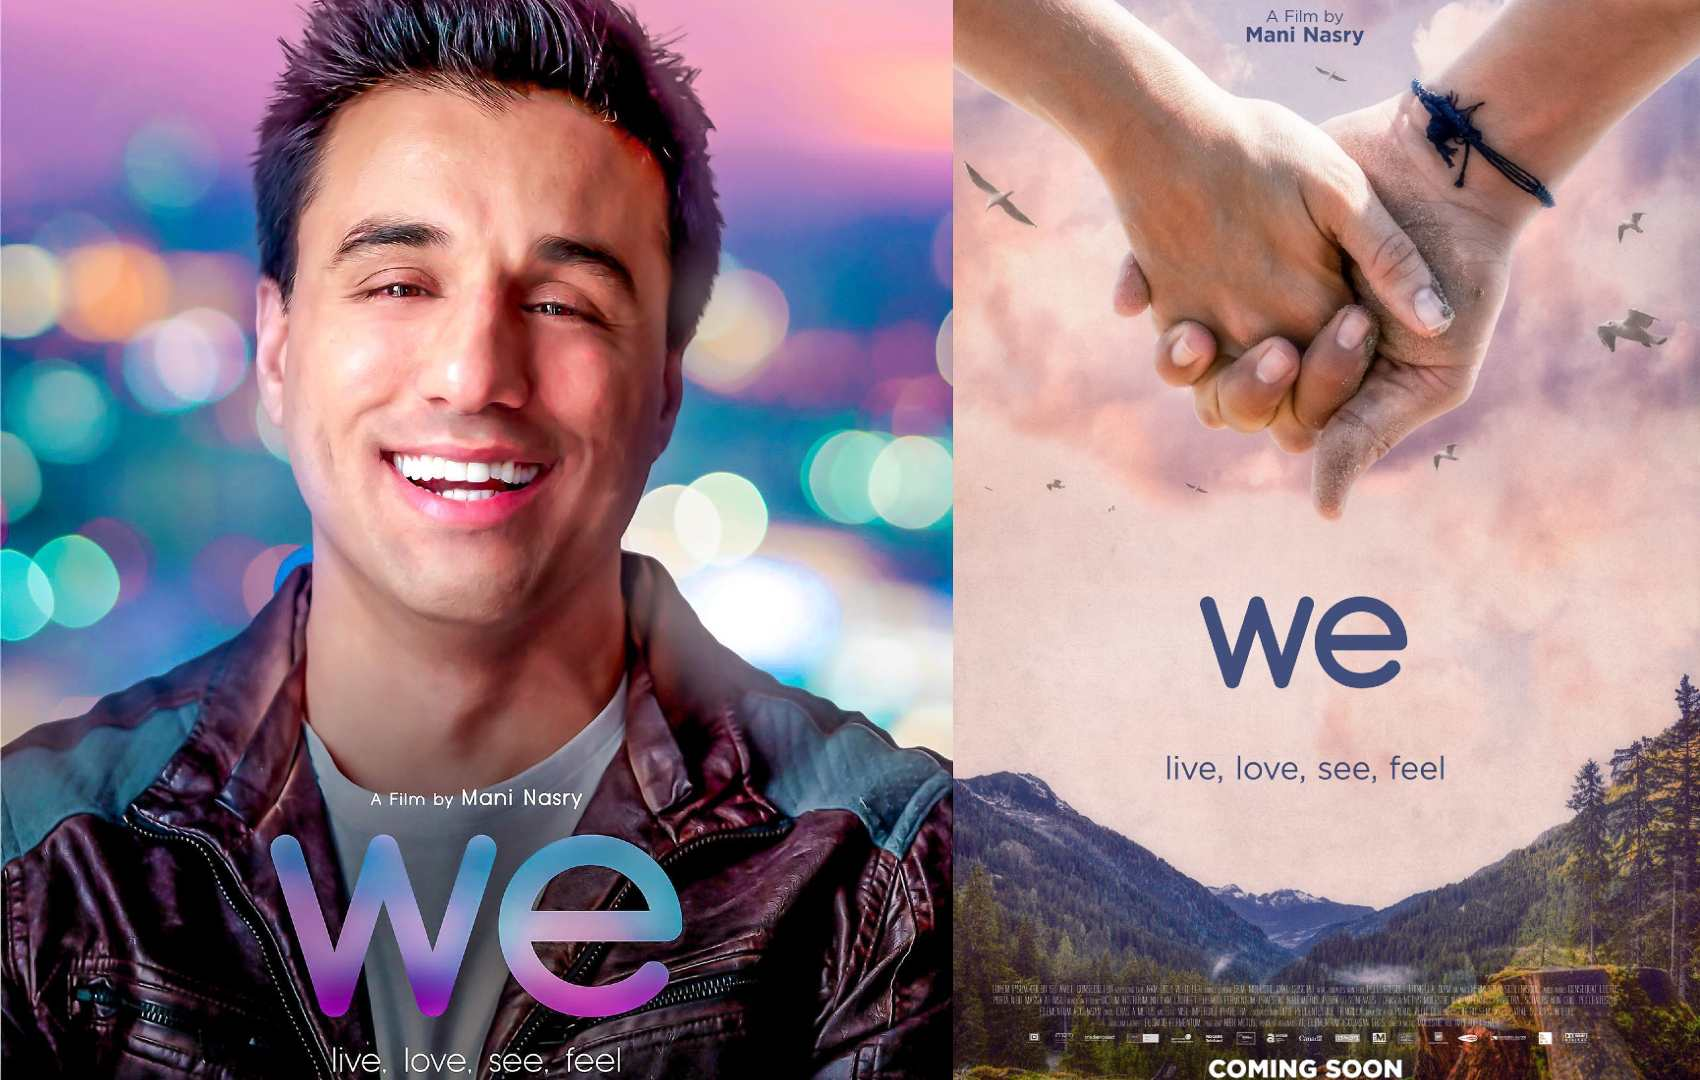 Producer, Director & Lead Actor Mani Nasry, release film We (2021), available on Itunes, Amazon Prime, Google Play and Vudu.